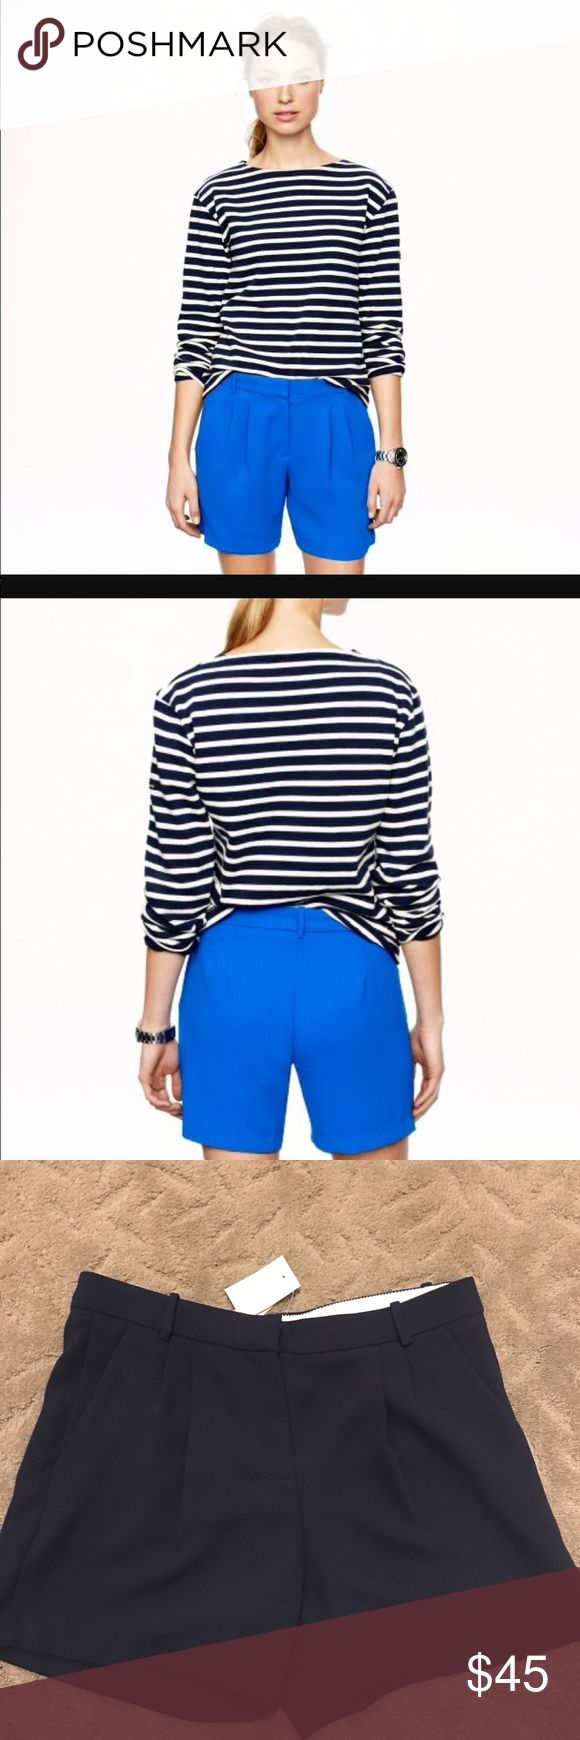 NAVY BLUE JCrew Dress Shorts NWT! Living in Alaska hasn't given me many opportunities to wear shorts. Bummer these are super cute. J. Crew Shorts